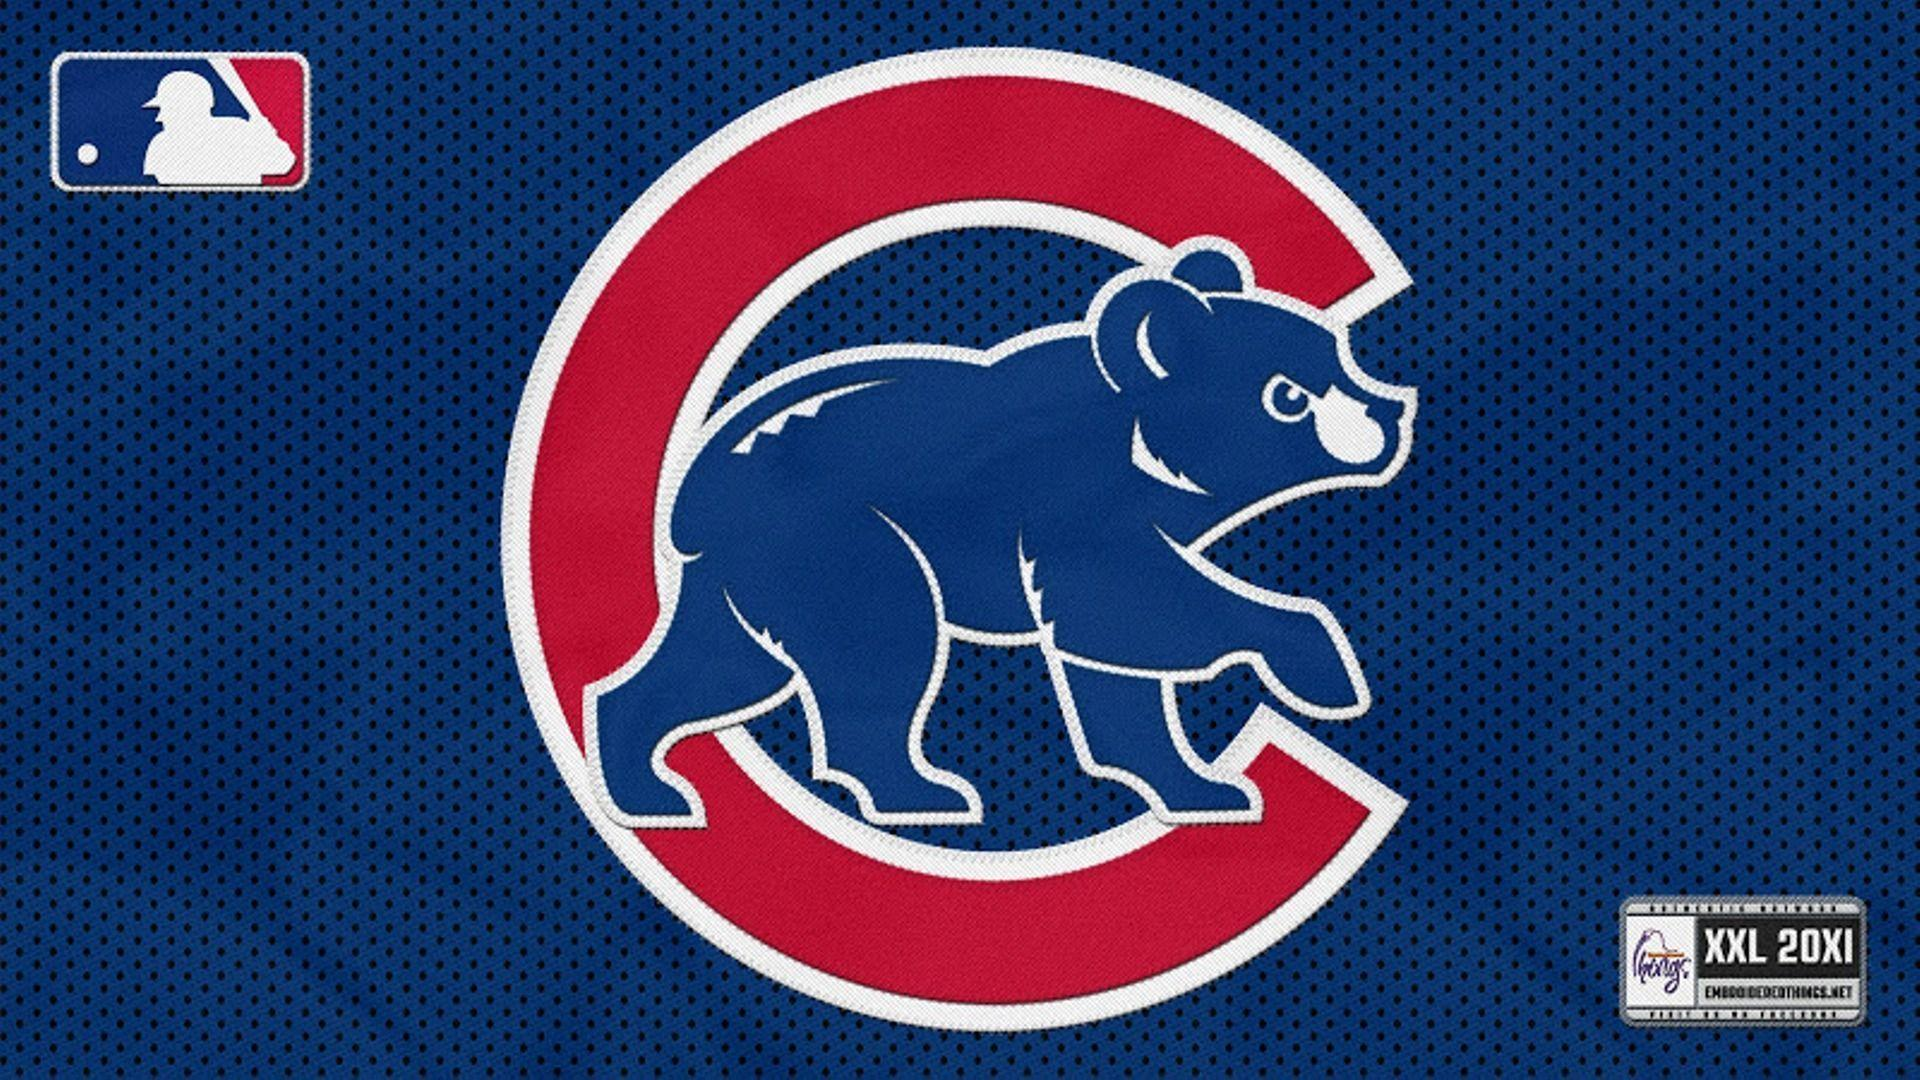 Chicago Cubs Baseball Team Sport Wallpapers HD - Wallpapers HD